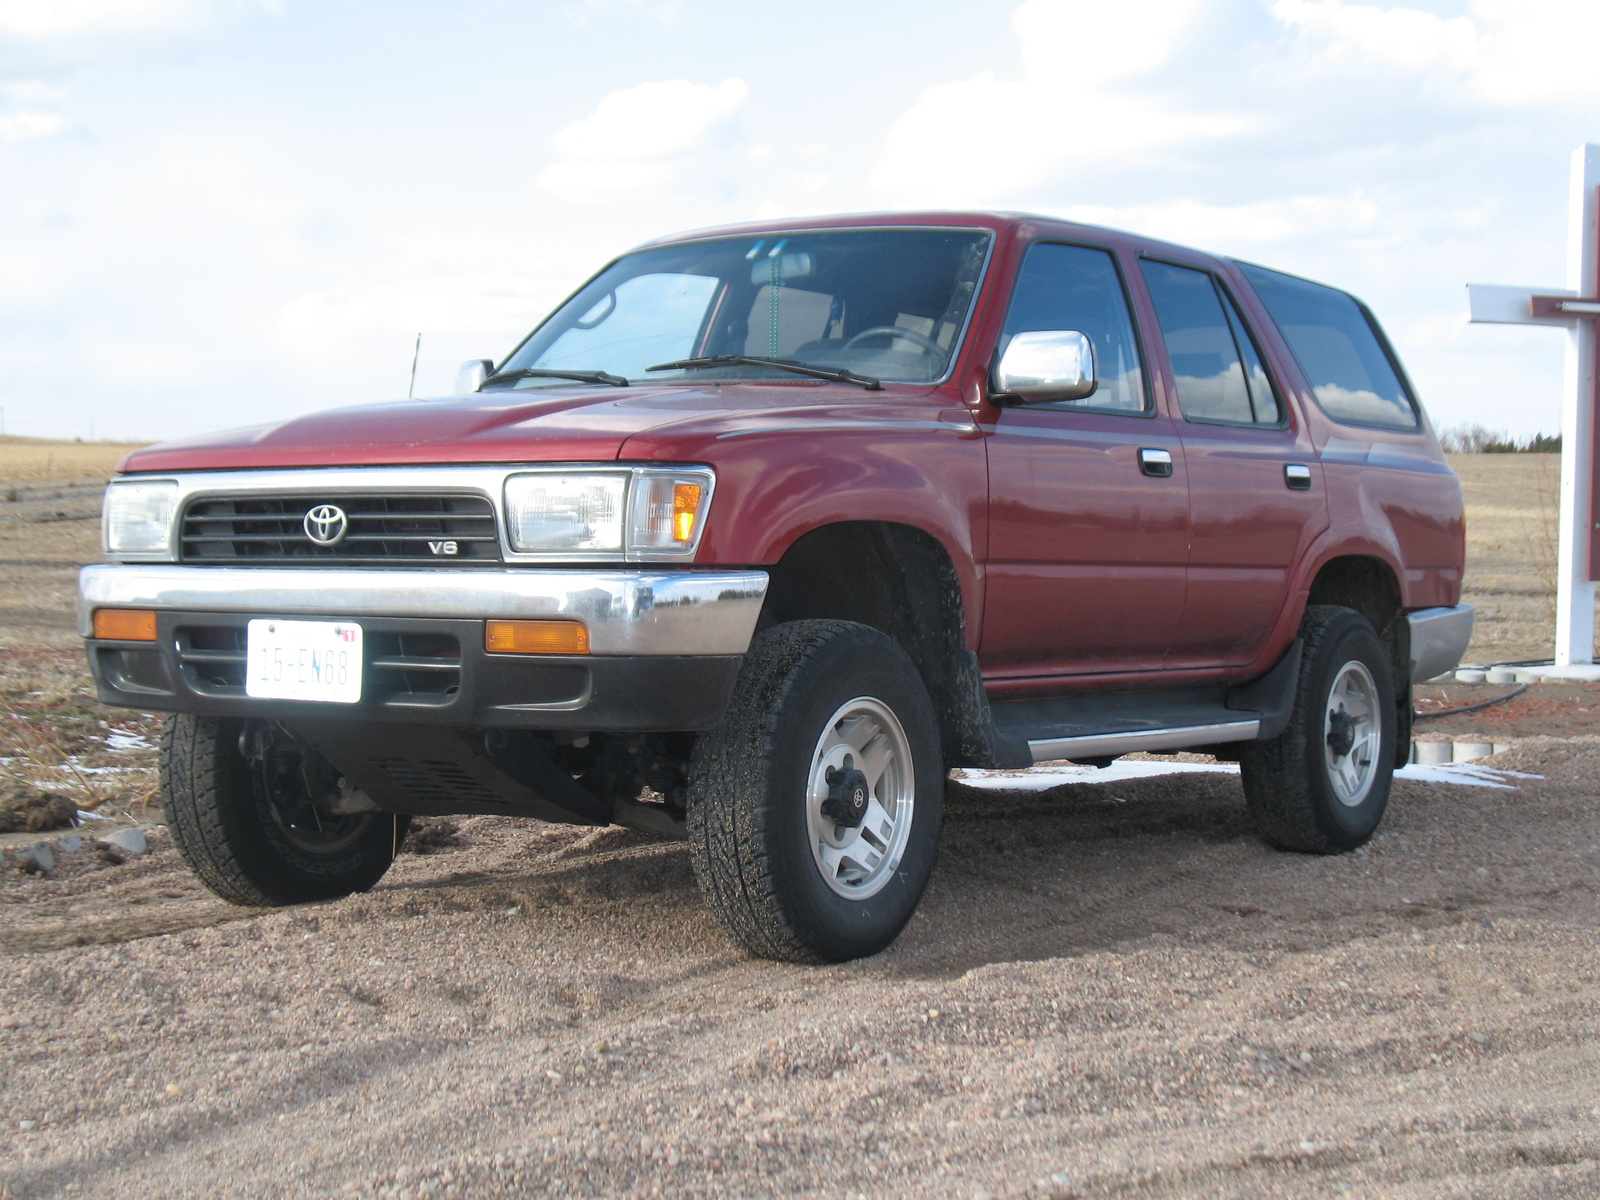 1996 toyota 4runner iii pictures information and specs. Black Bedroom Furniture Sets. Home Design Ideas